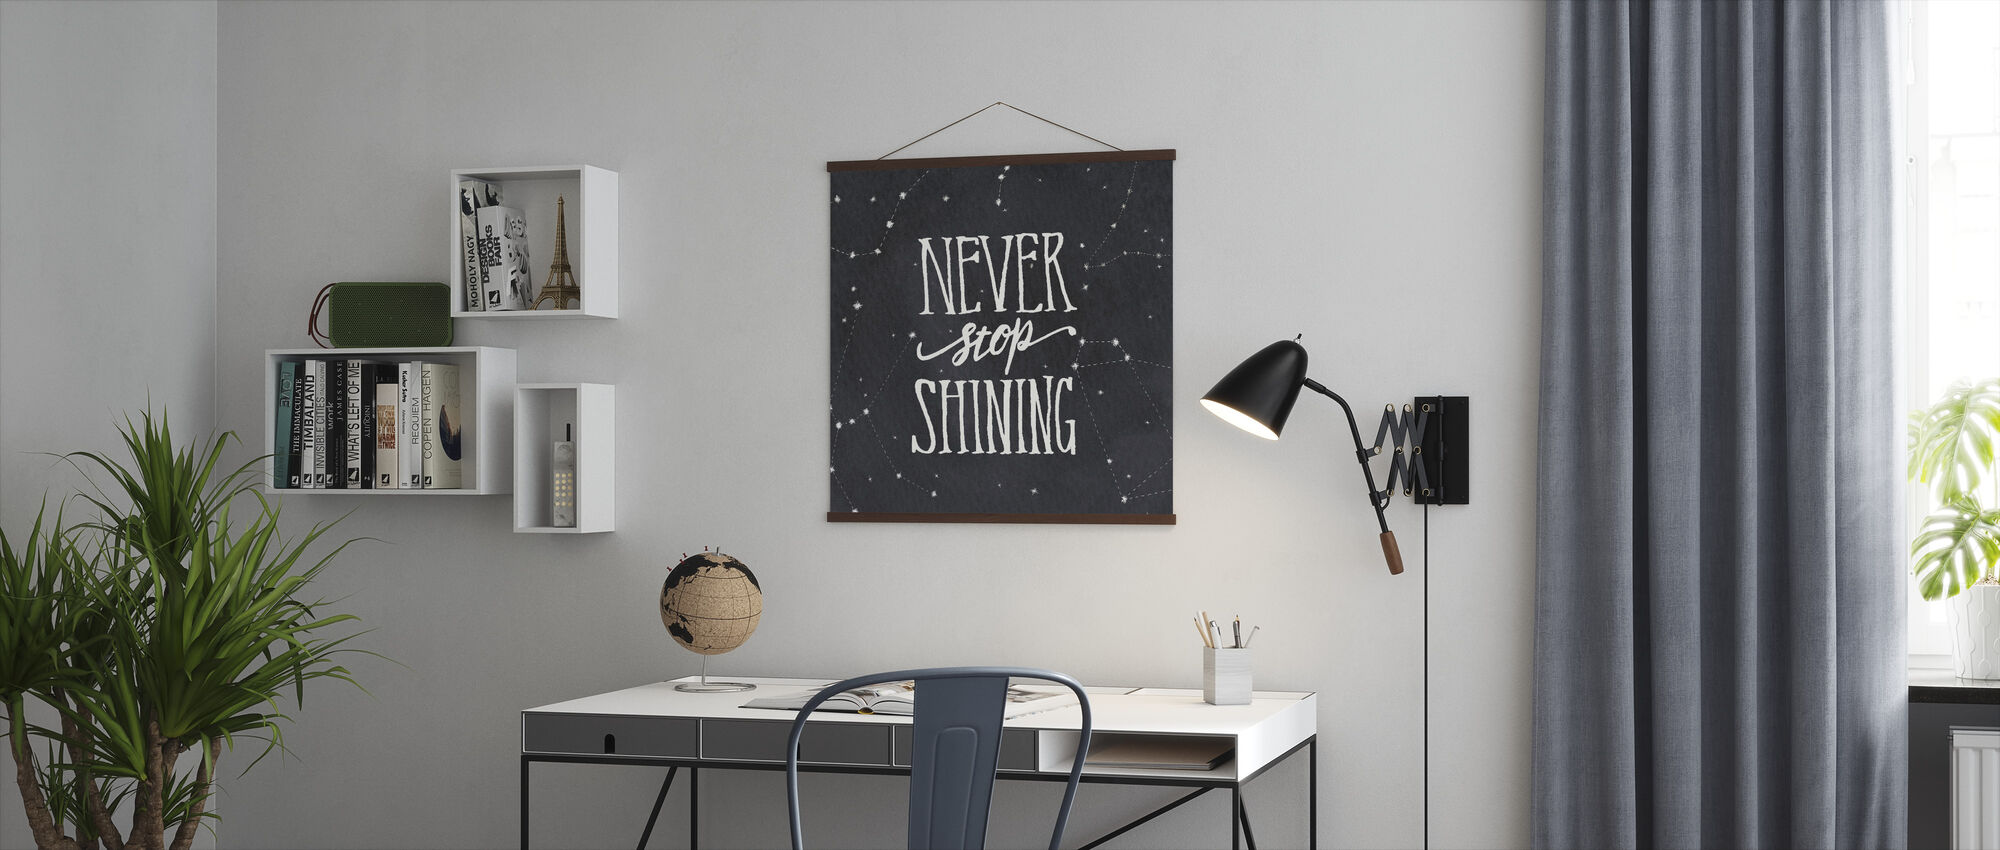 Never Stop Shining - Poster - Office